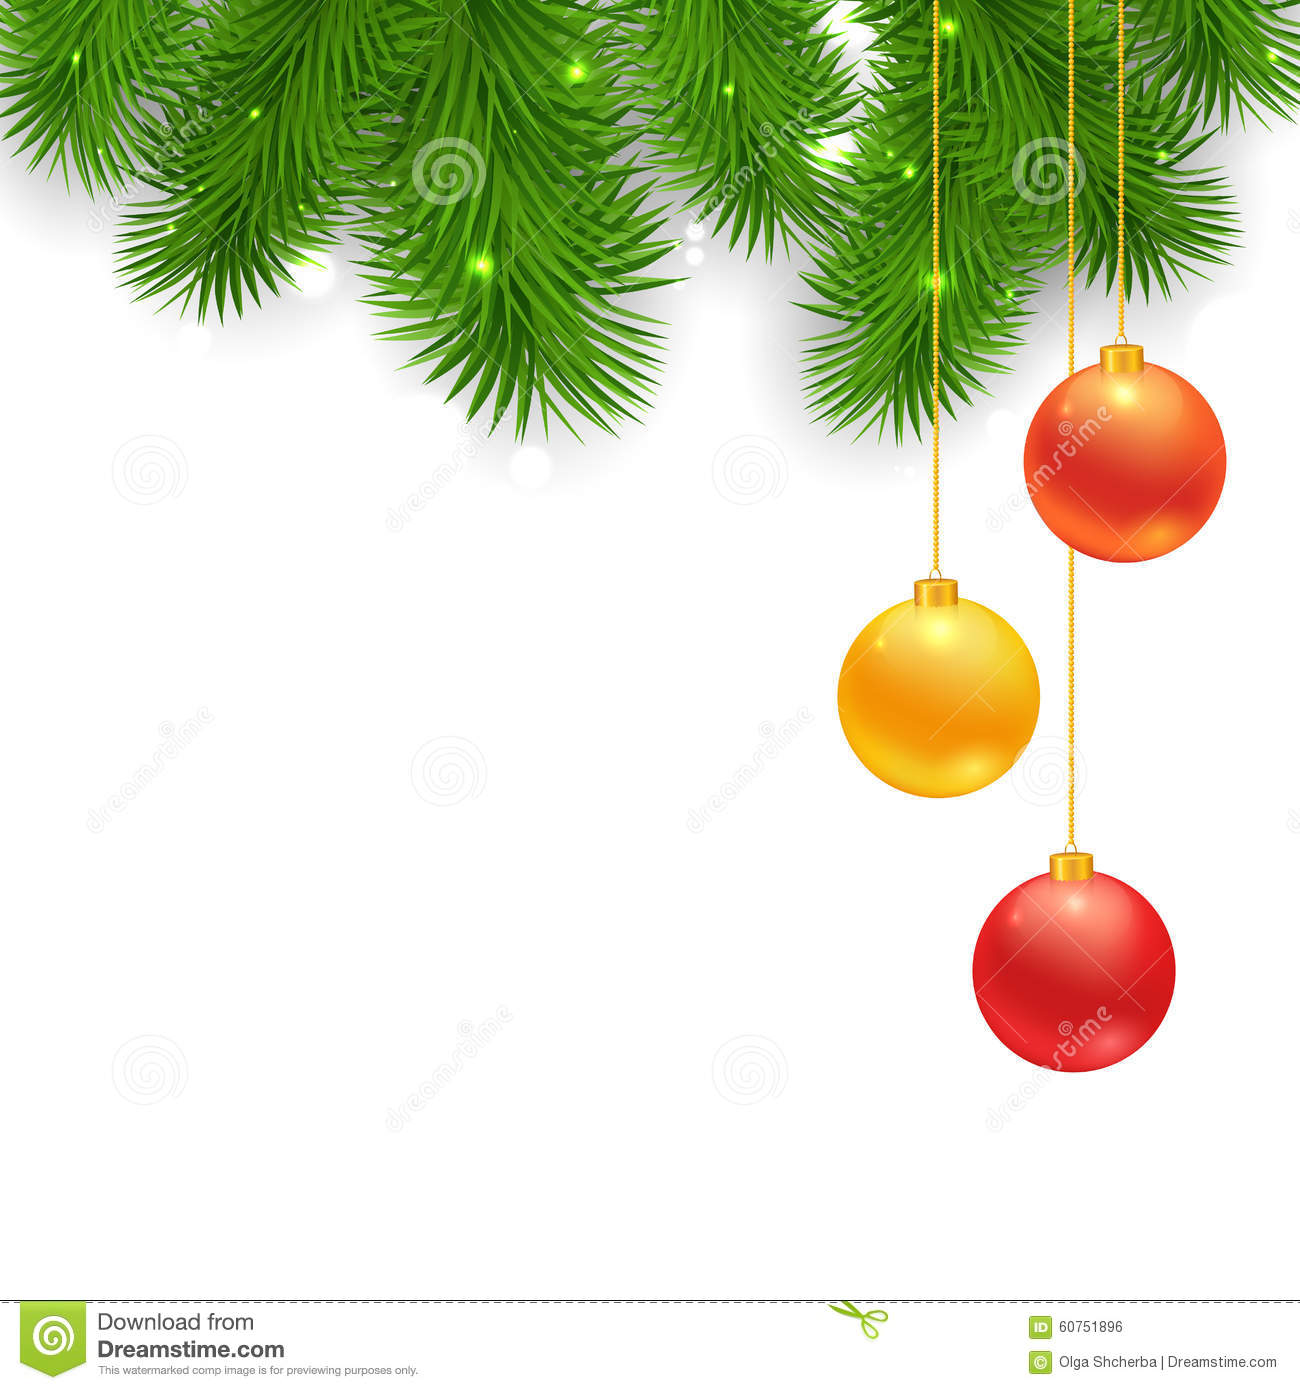 Christmas tree borders with hanging balls stock vector